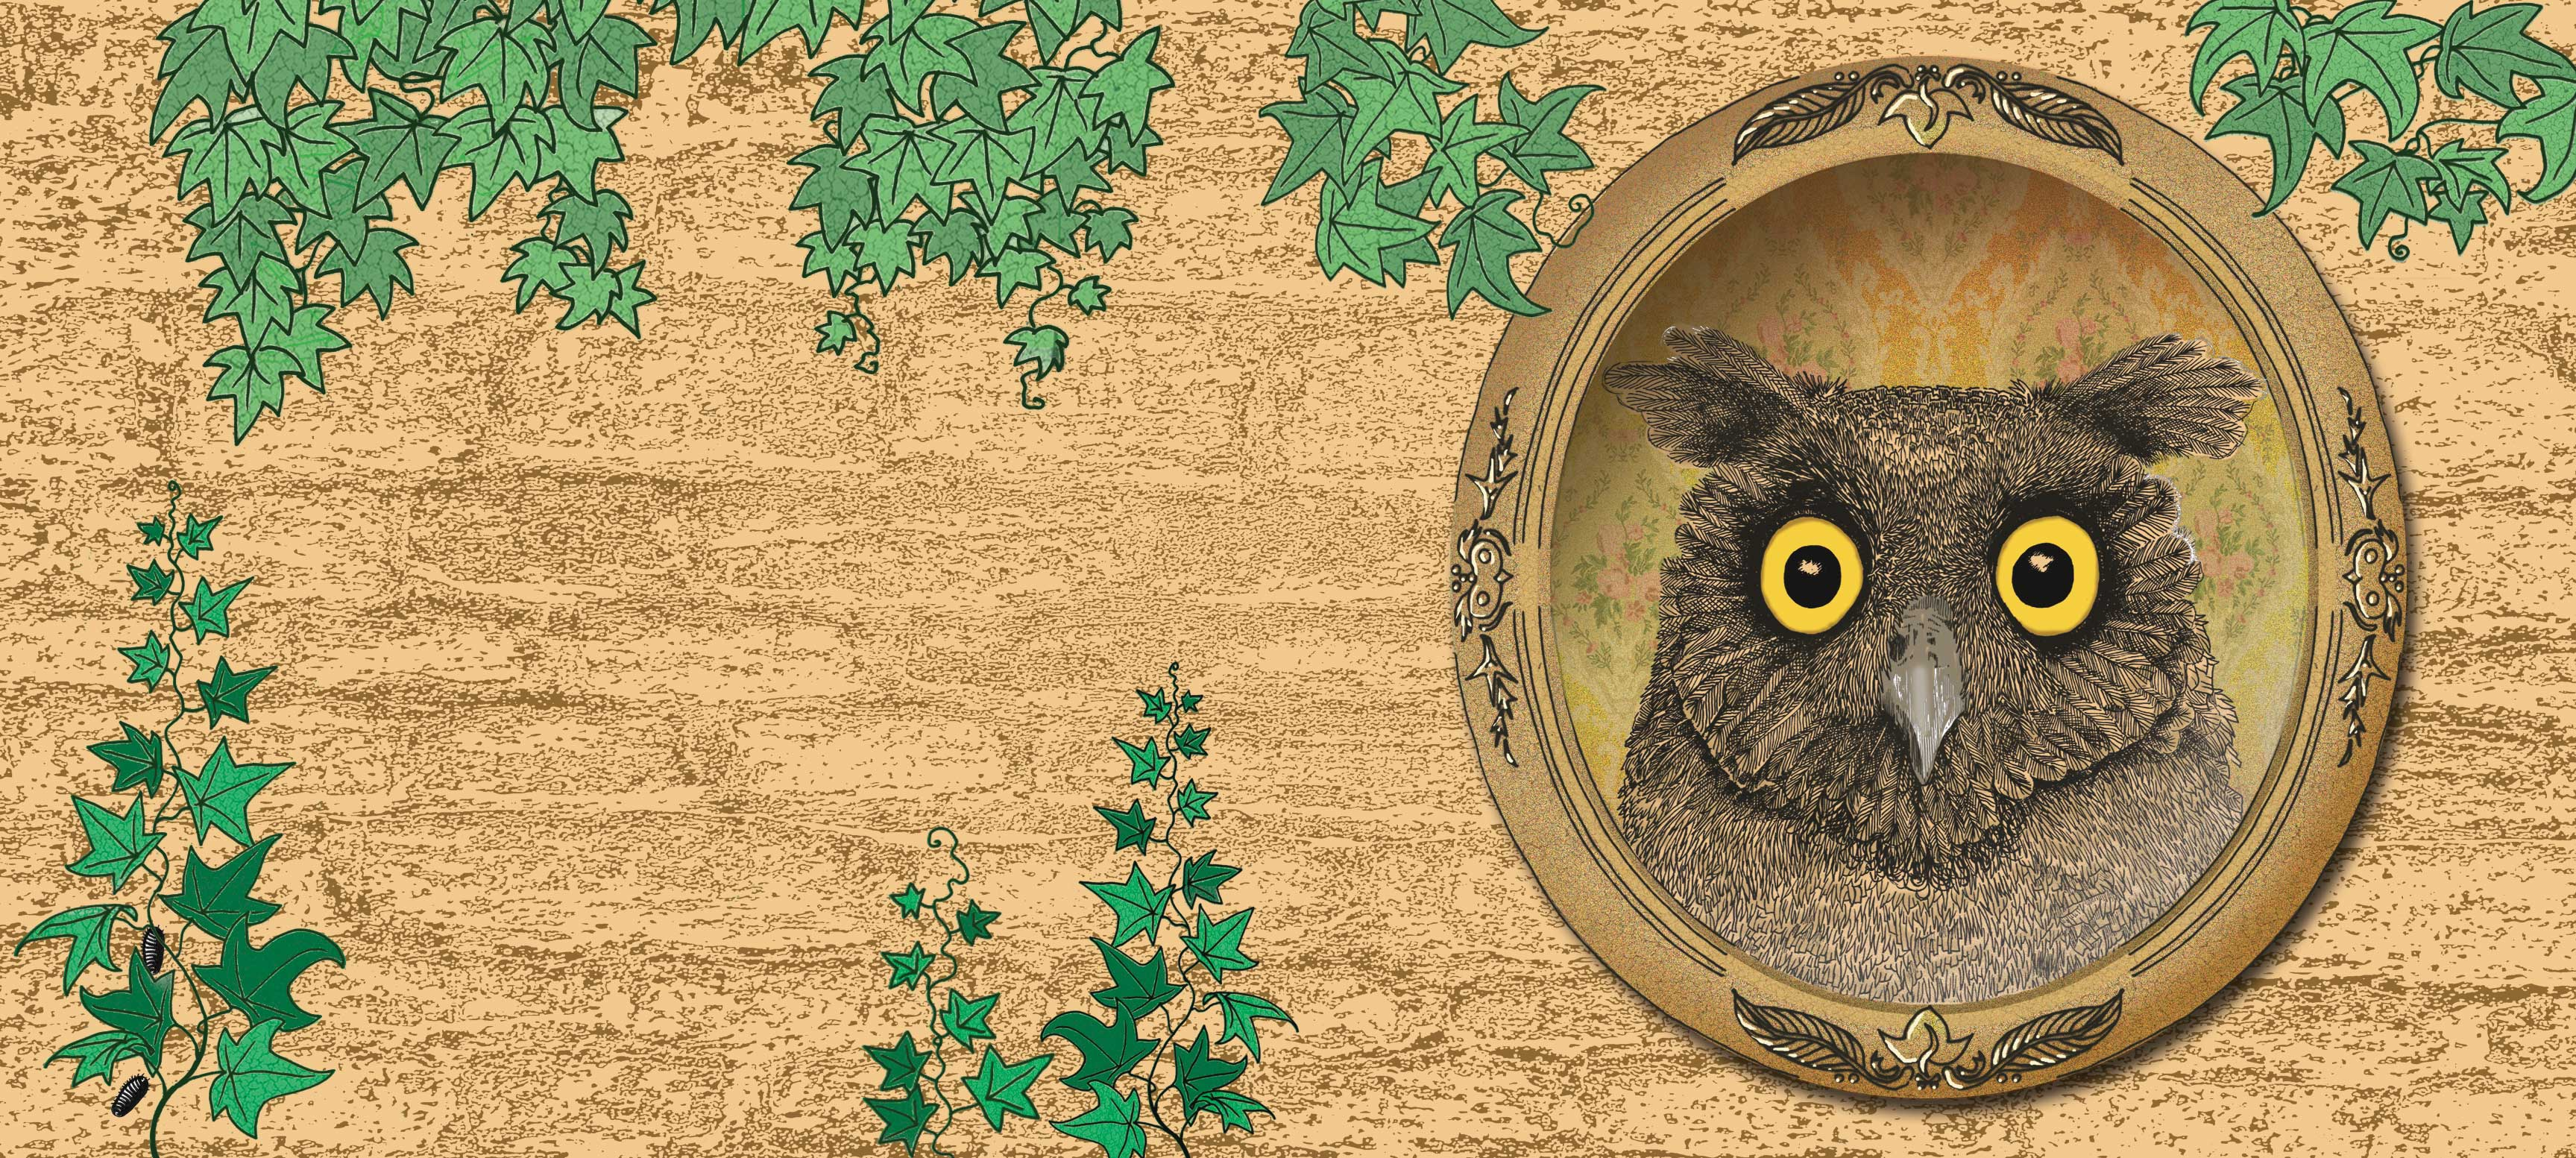 fineline pen ink image of an owl surprised in a mirror against a garden wall with vines album cover